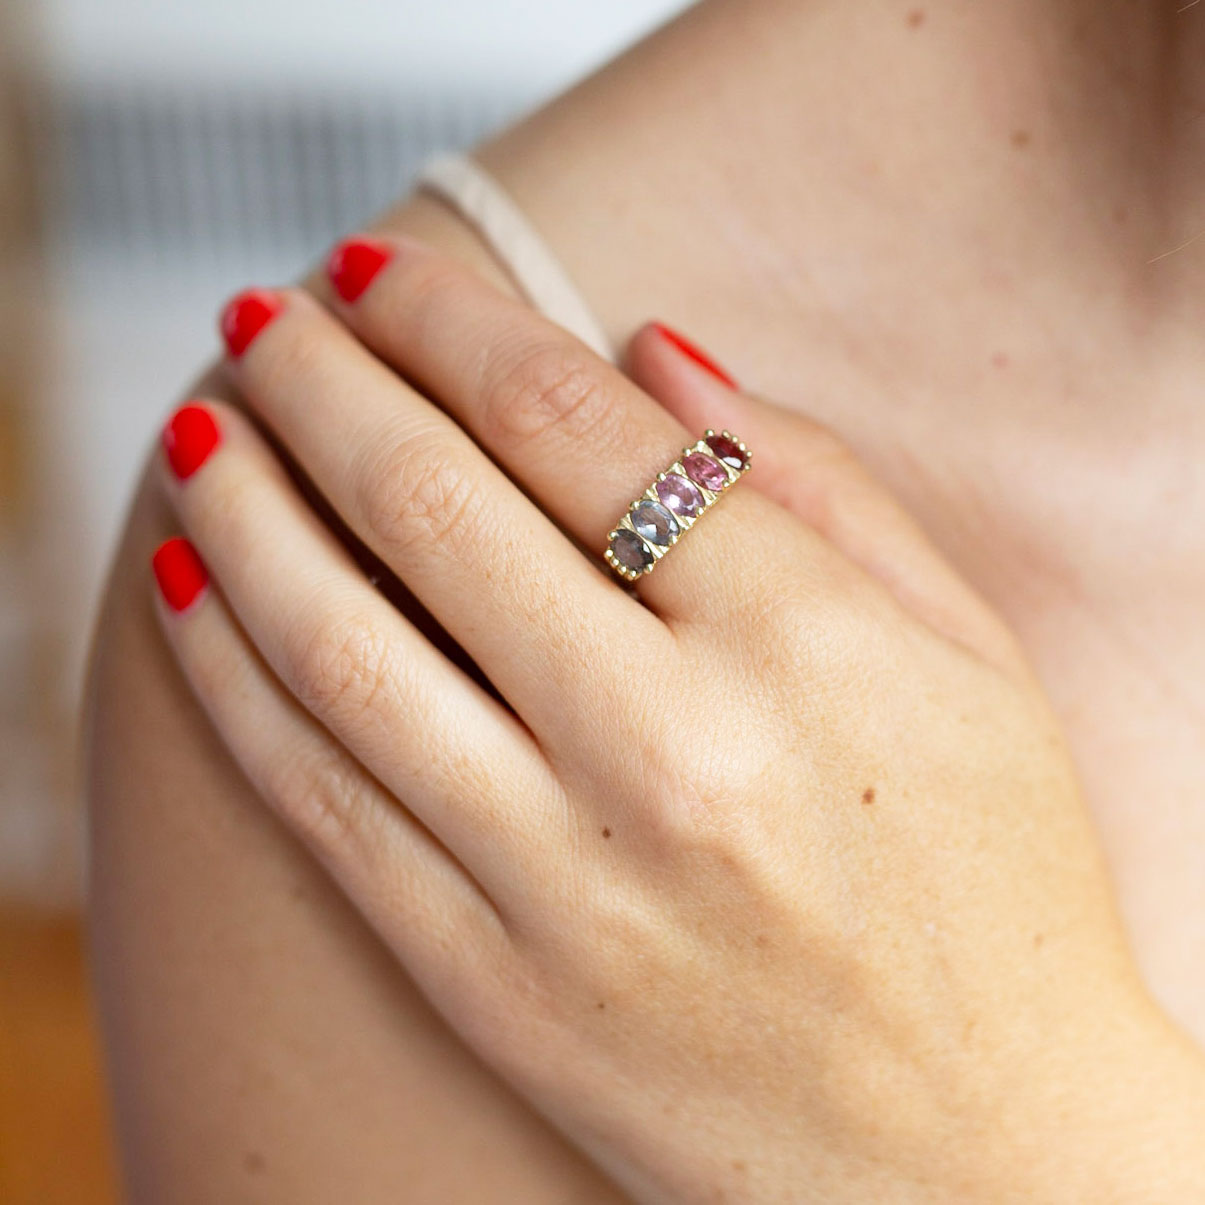 The F&B Dusty Rose Ombre Ring